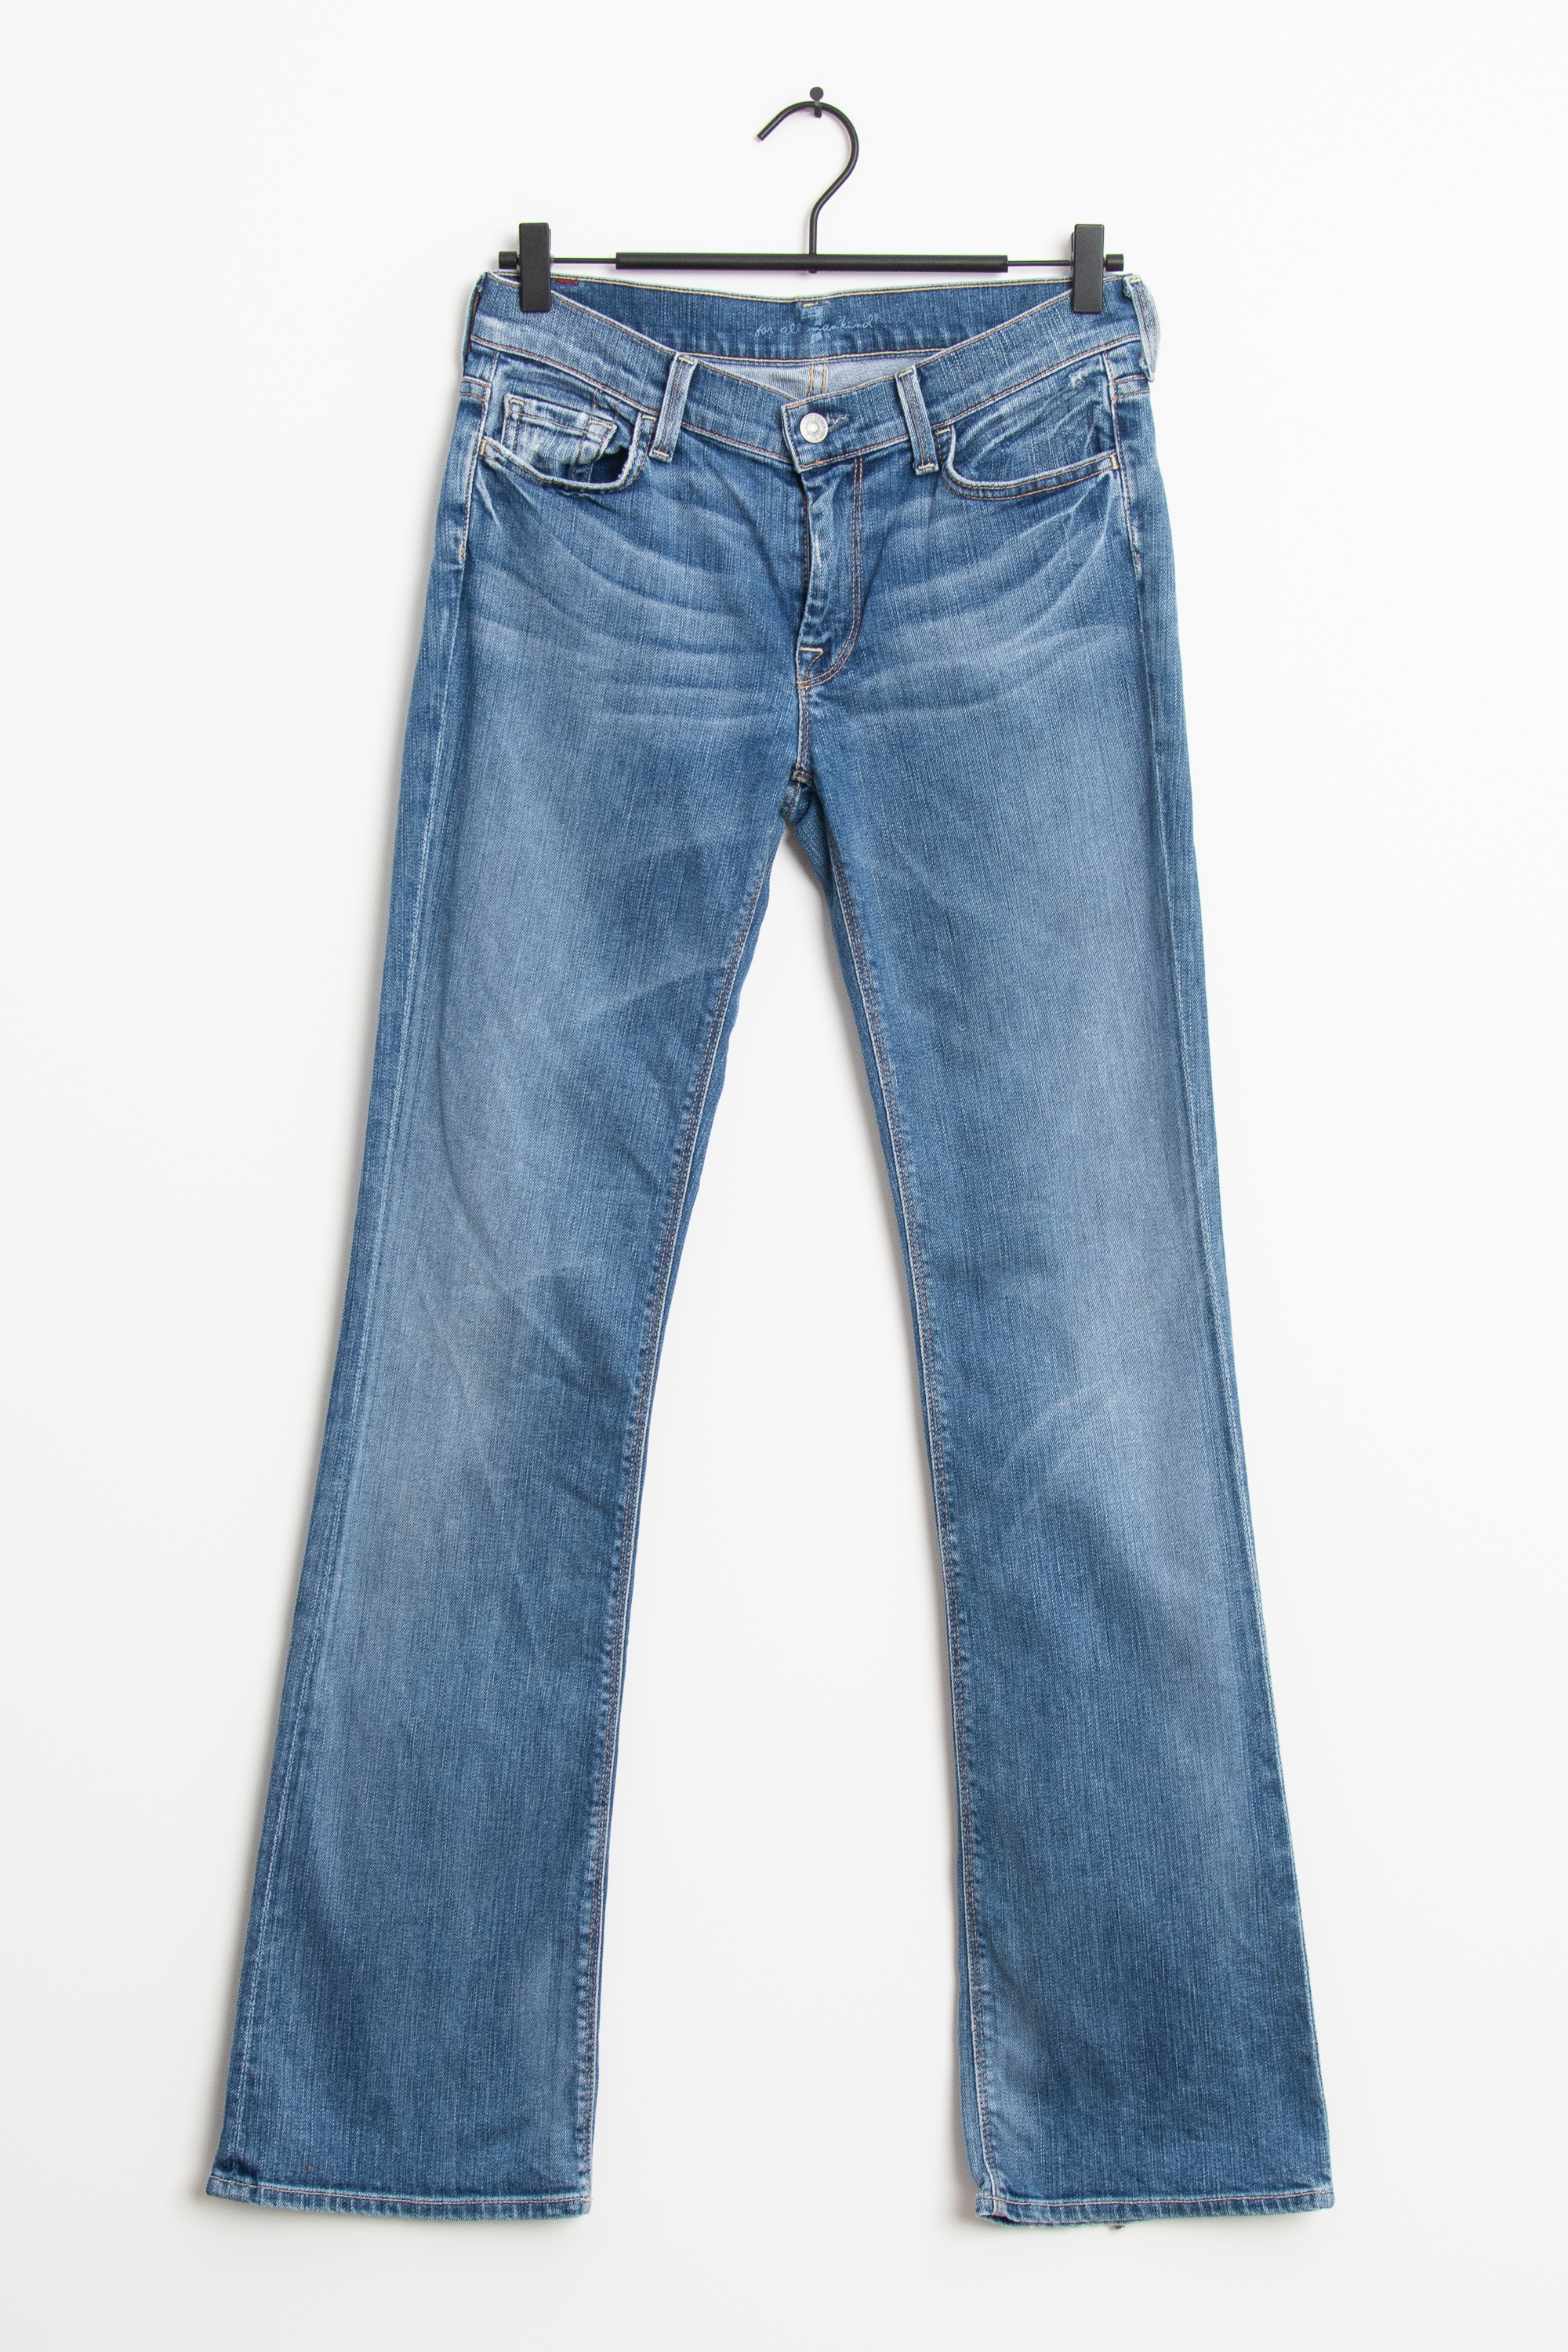 7 for all mankind Jeans Blau Gr.M